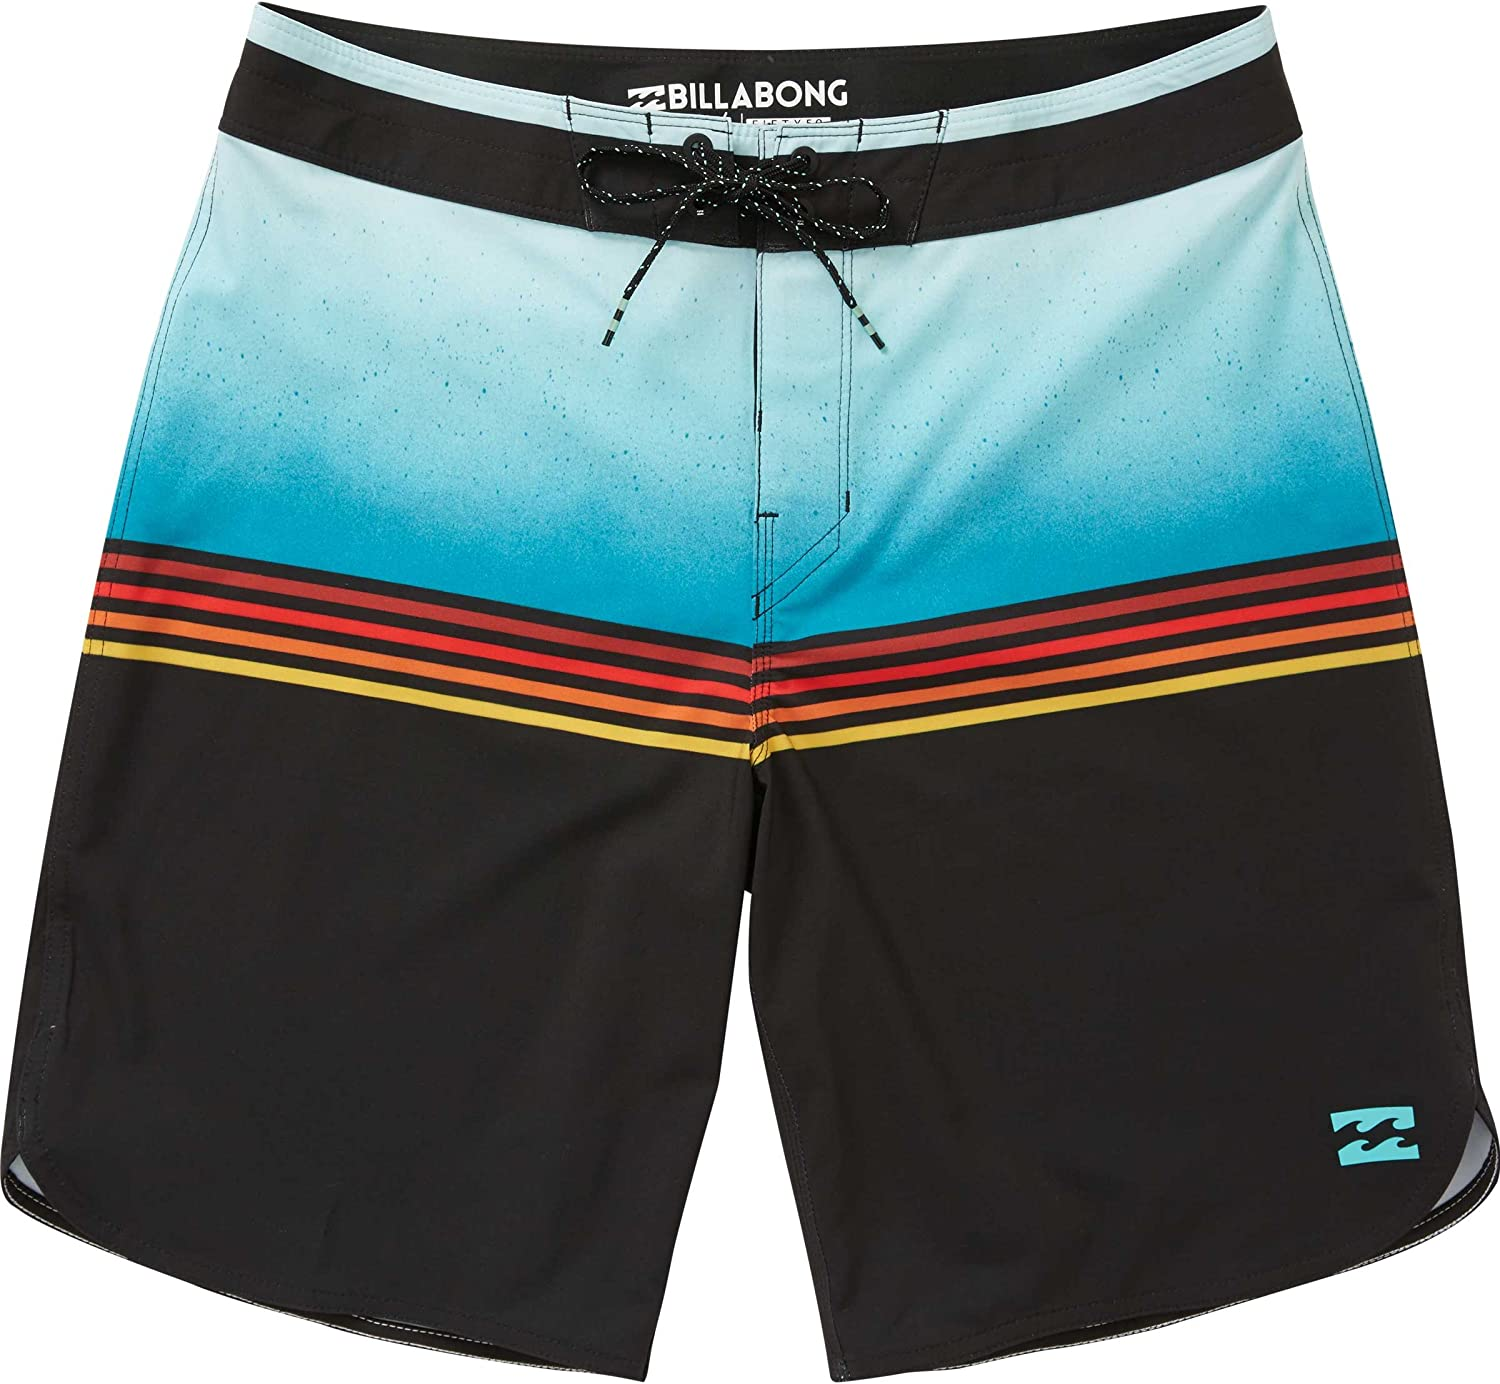 Billabong Men's Fifty50 X